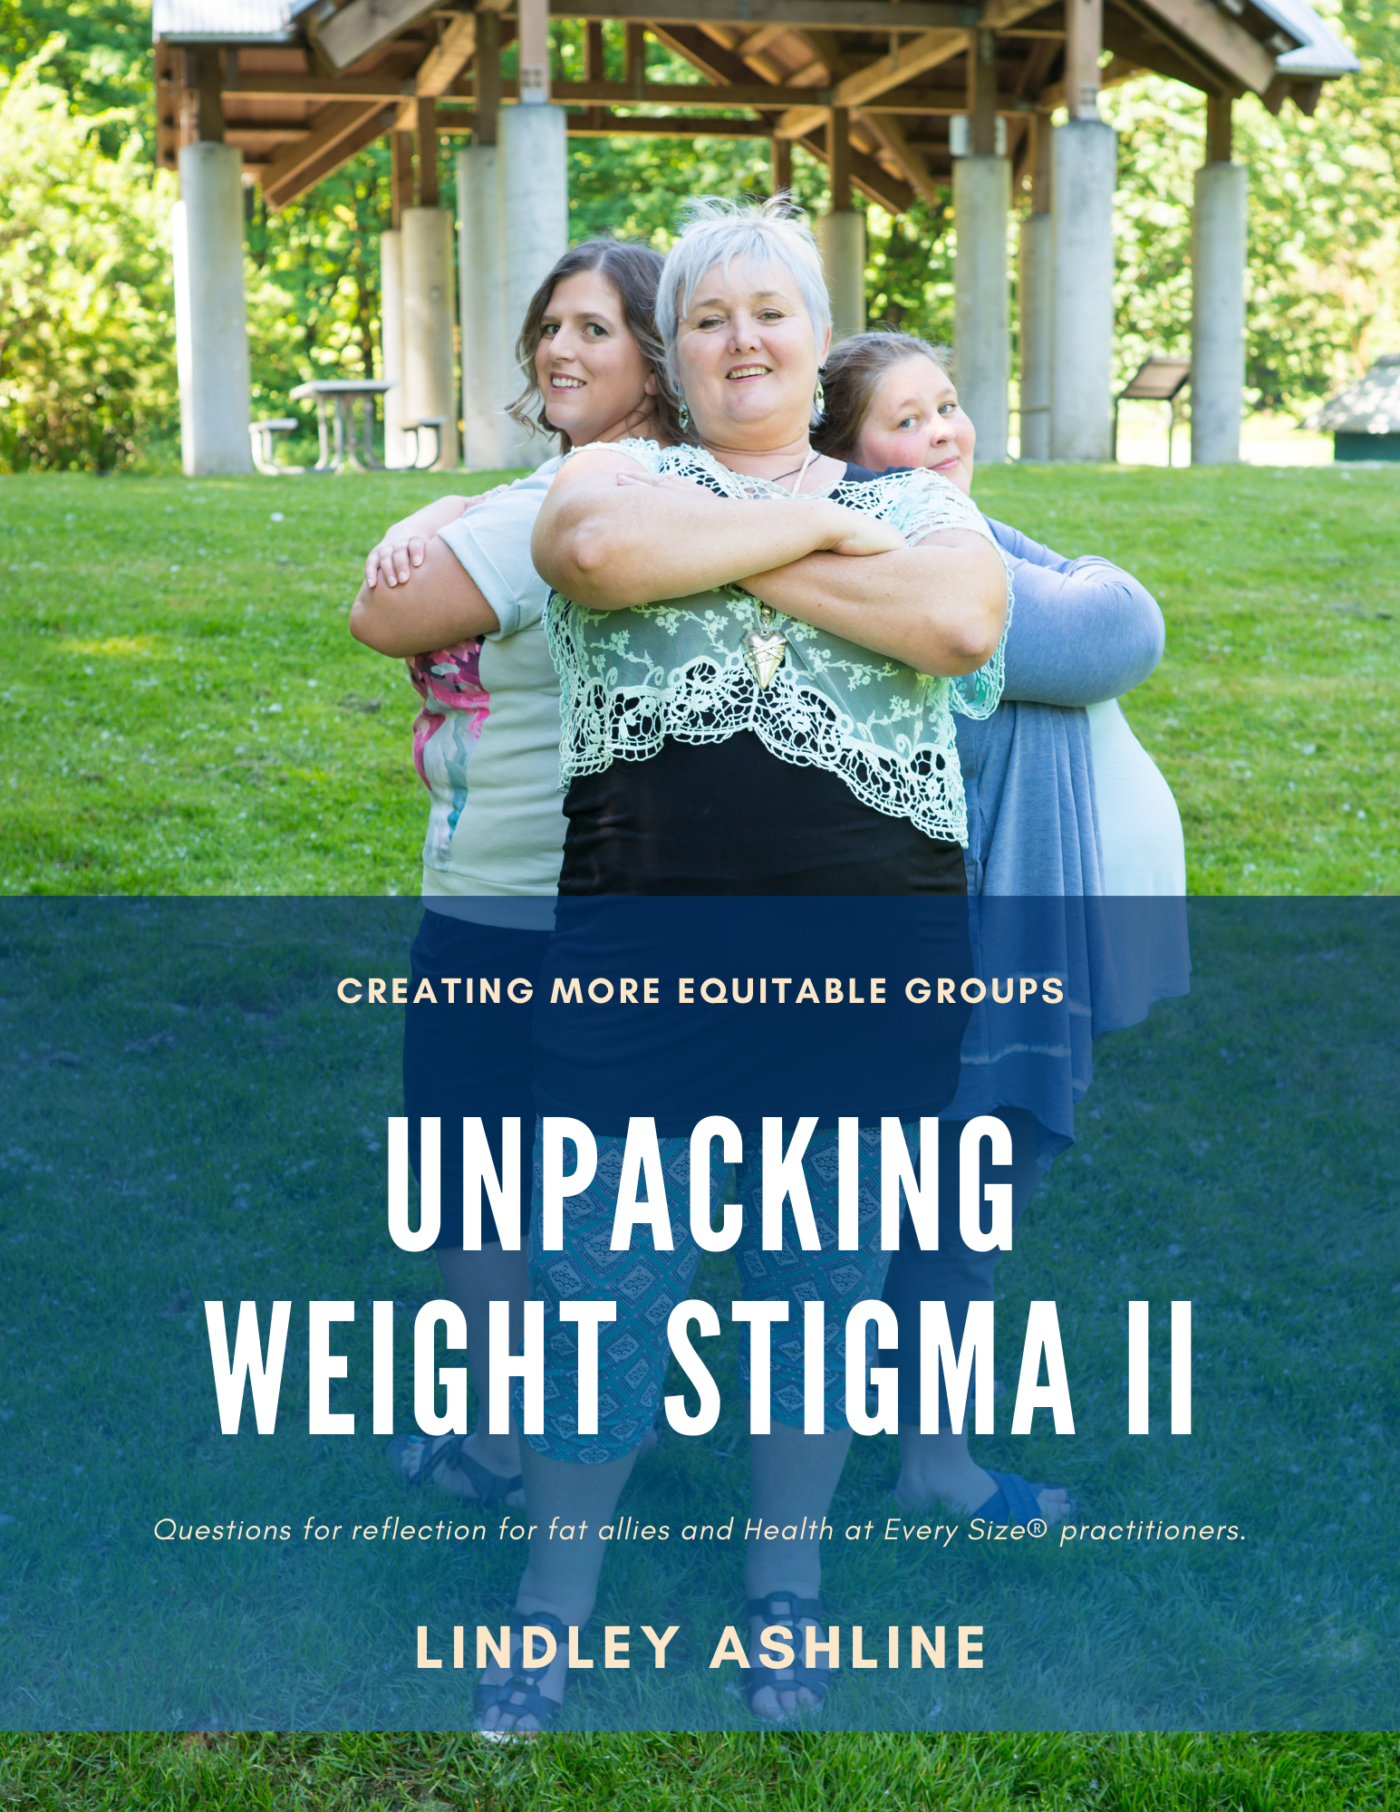 """Three fat white people with feminine appearances stand back to back with arms crossed, smiling, in a park. Text on the image reads, """"Creating More Equitable Groups: Unpacking Weight Stigma 2. Questions for reflection for fat allies and Health at Every Size® practitioners. Lindley Ashline."""""""